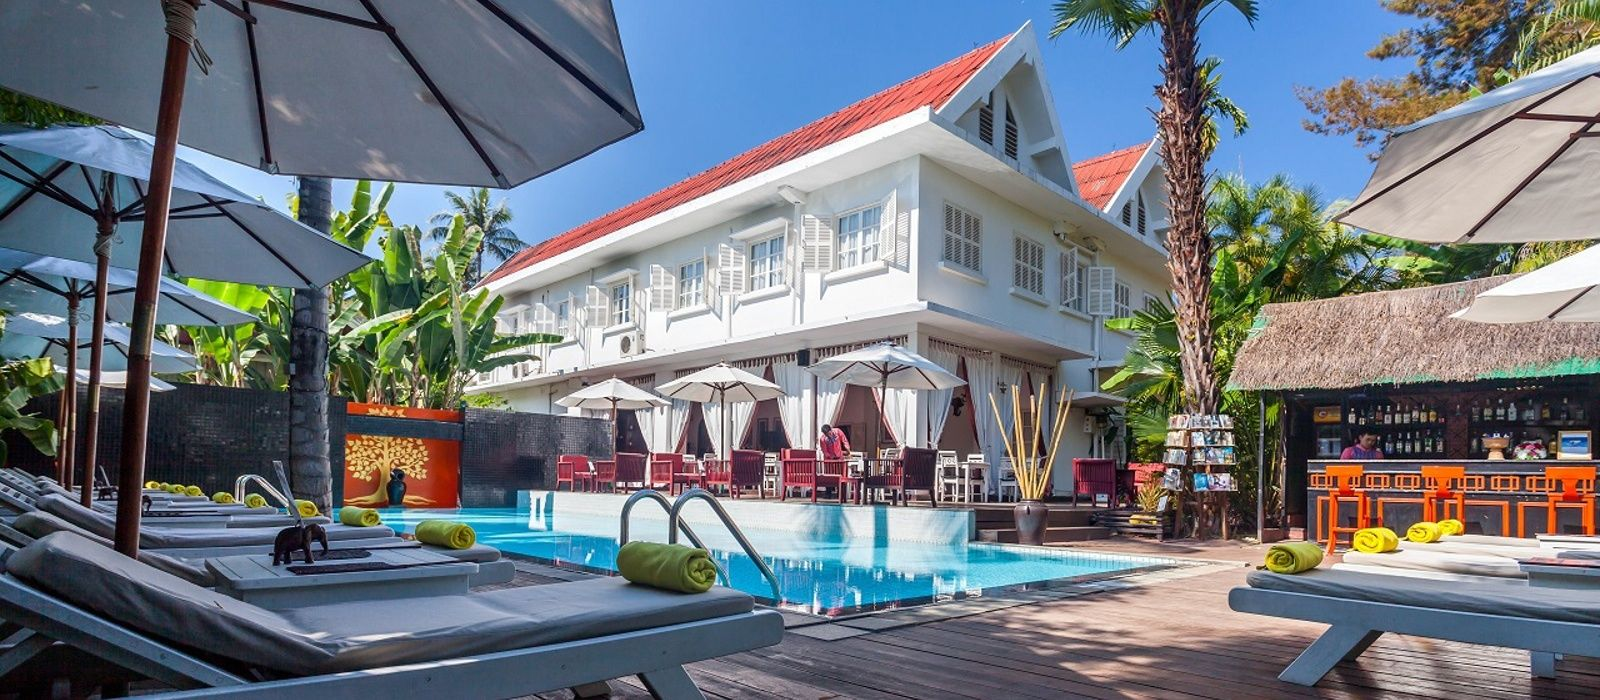 Maison souvannaphoum hotel in laos enchanting travels for Luang prabang luxury hotels